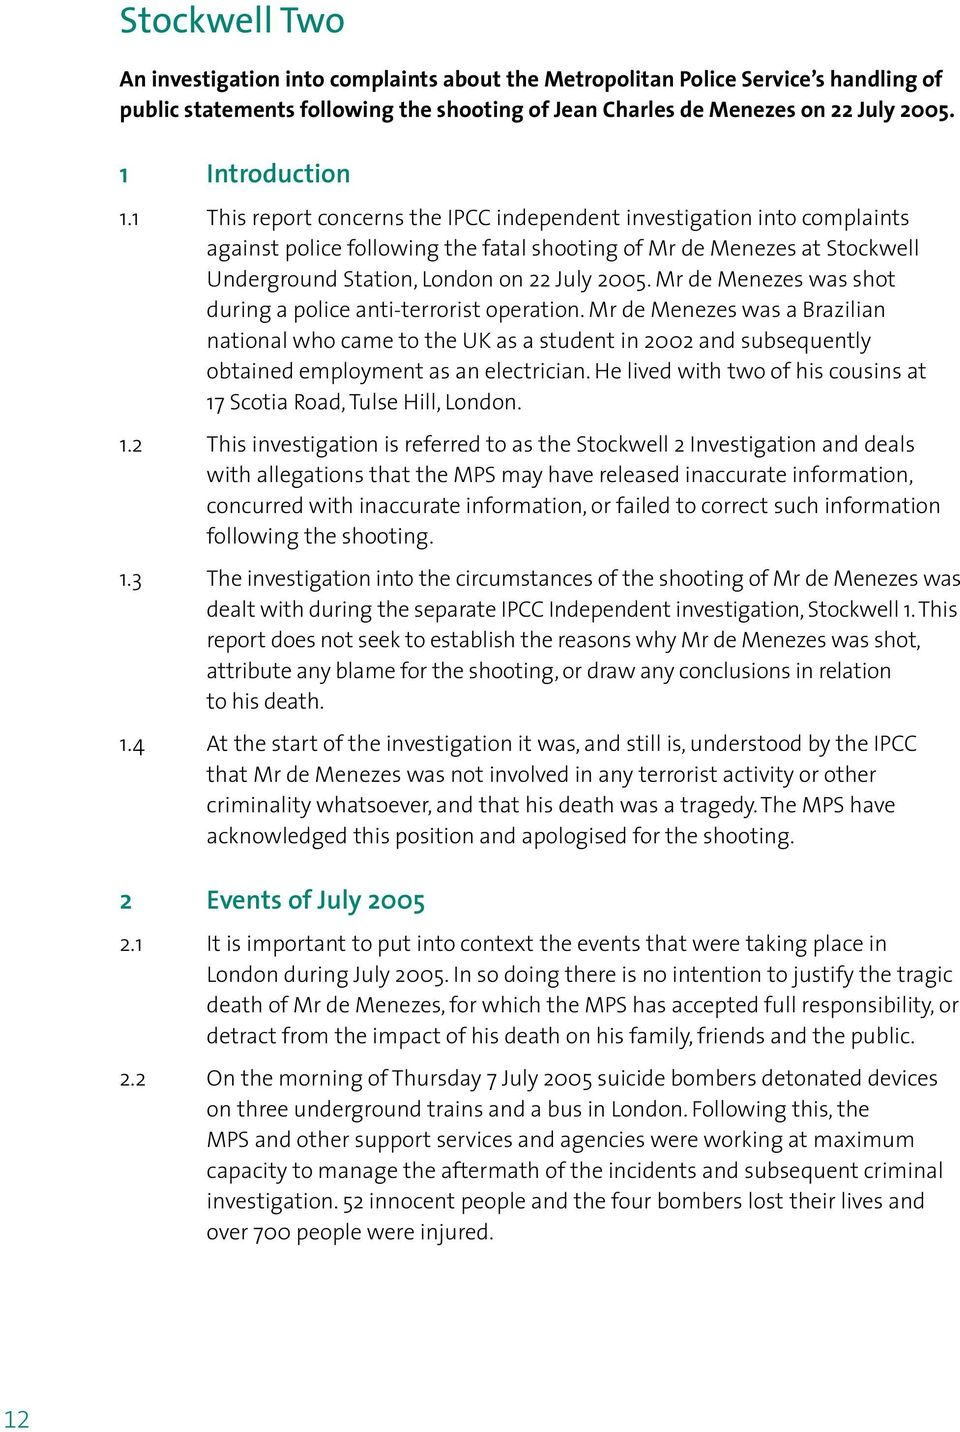 1 This report concerns the IPCC independent investigation into complaints against police following the fatal shooting of Mr de Menezes at Stockwell Underground Station, London on 22 July 2005.